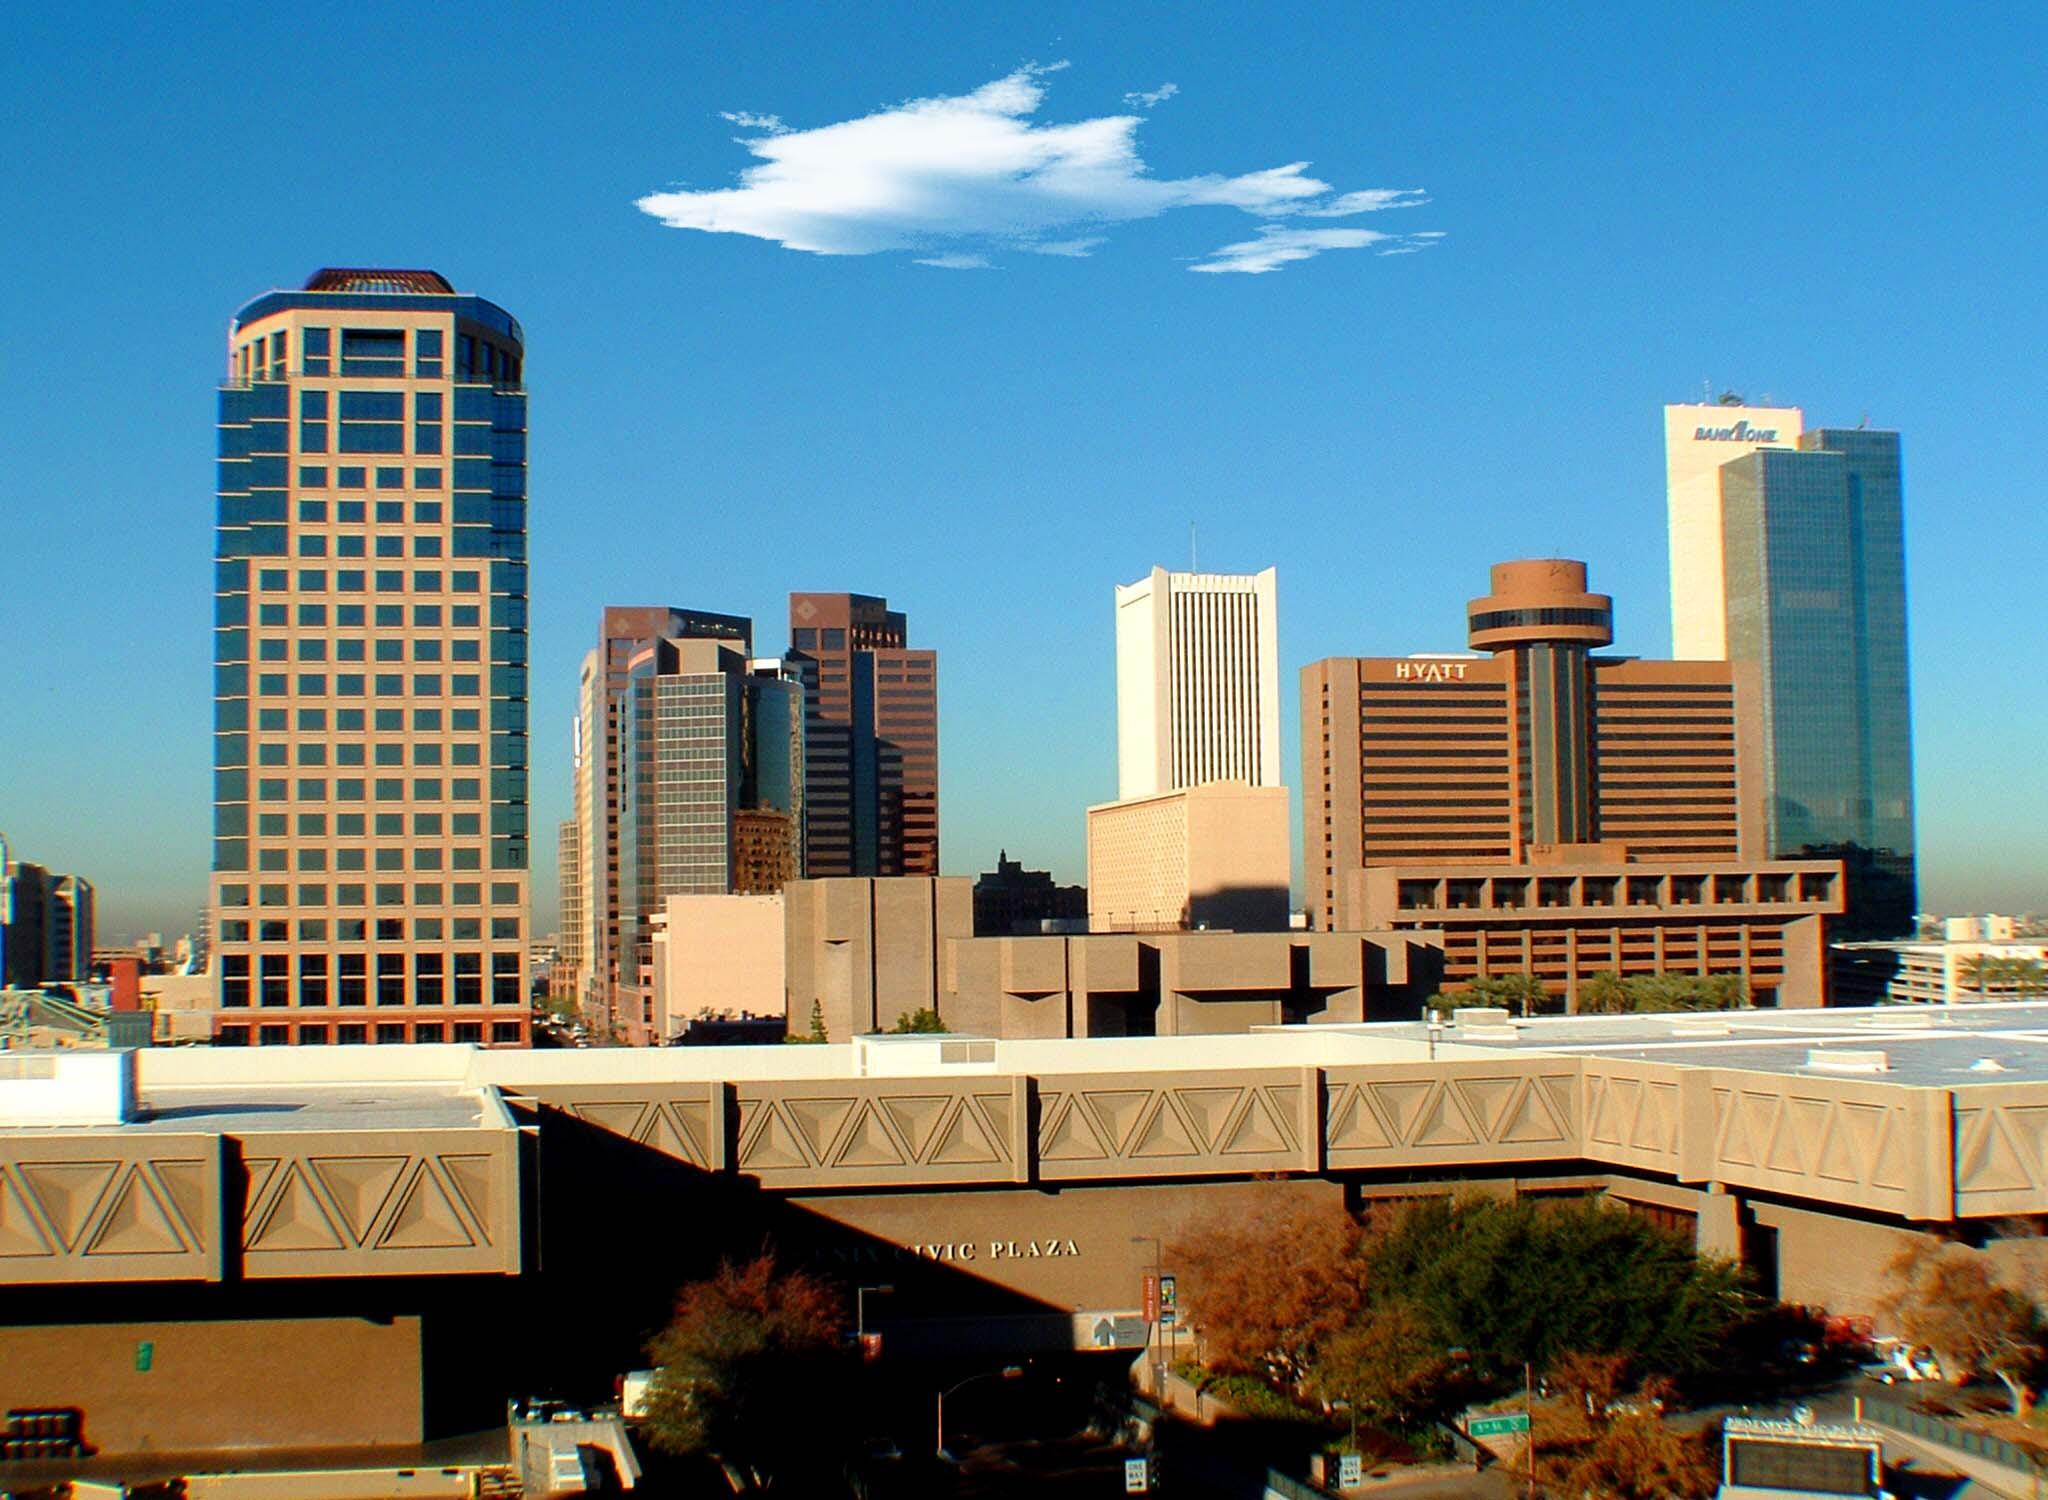 http://upload.wikimedia.org/wikipedia/commons/6/62/Phoenix_skyline_Arizona_USA.jpg